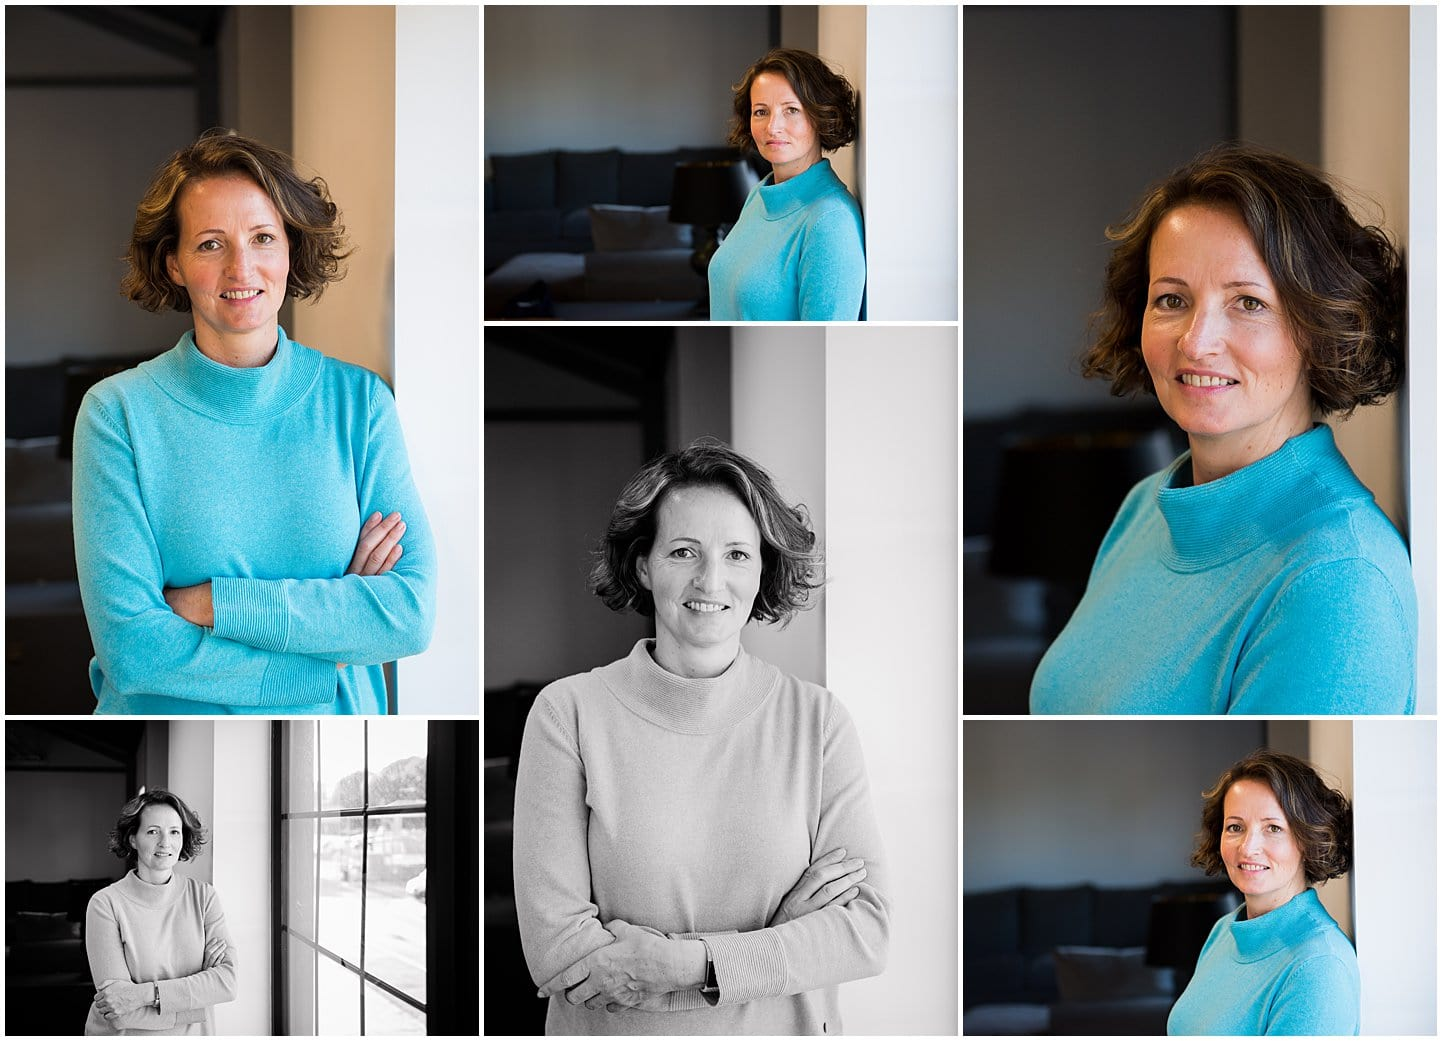 Professional headshots of woman wearing a turquoise blue jumper